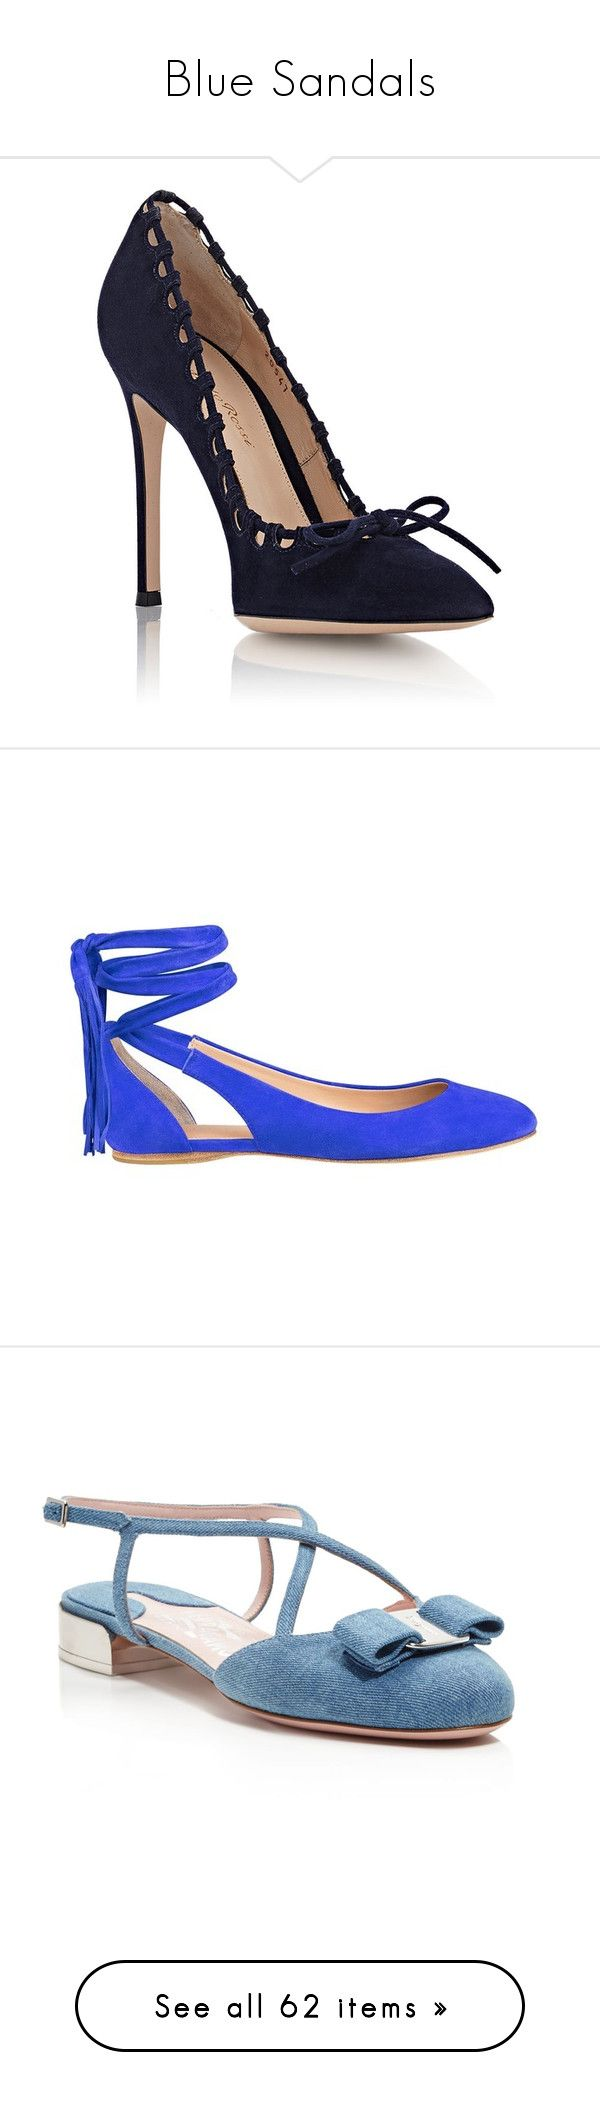 """""""Blue Sandals"""" by kikikoji ❤ liked on Polyvore featuring shoes, pumps, heels, high heel court shoes, high heel pumps, pointed toe pumps, pointed toe high heel pumps, navy blue shoes, flats and medium blue suede"""